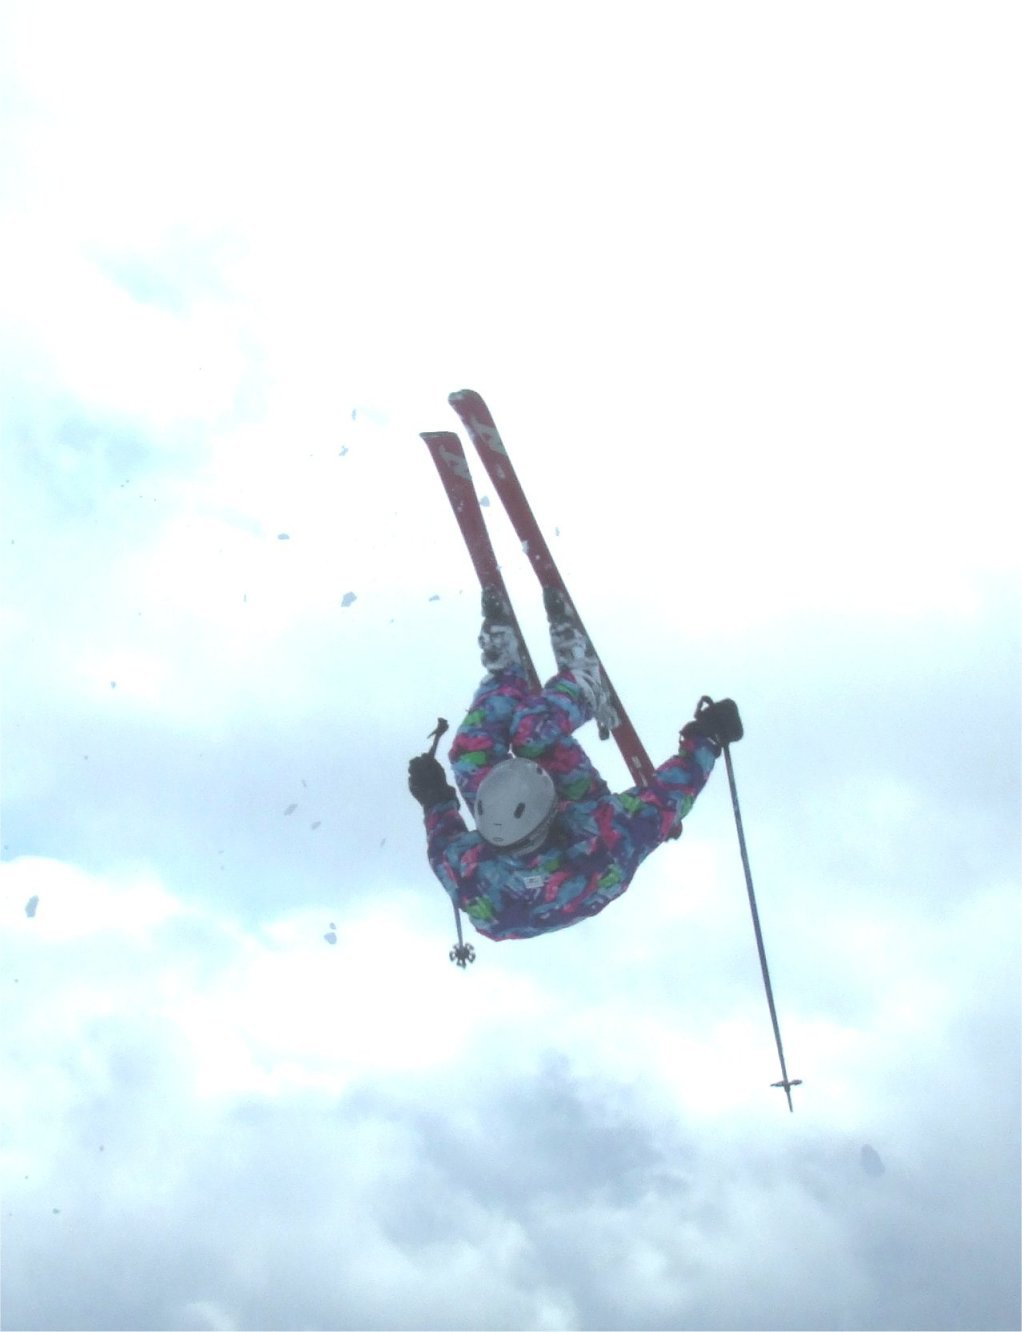 Front flip in nice outfit